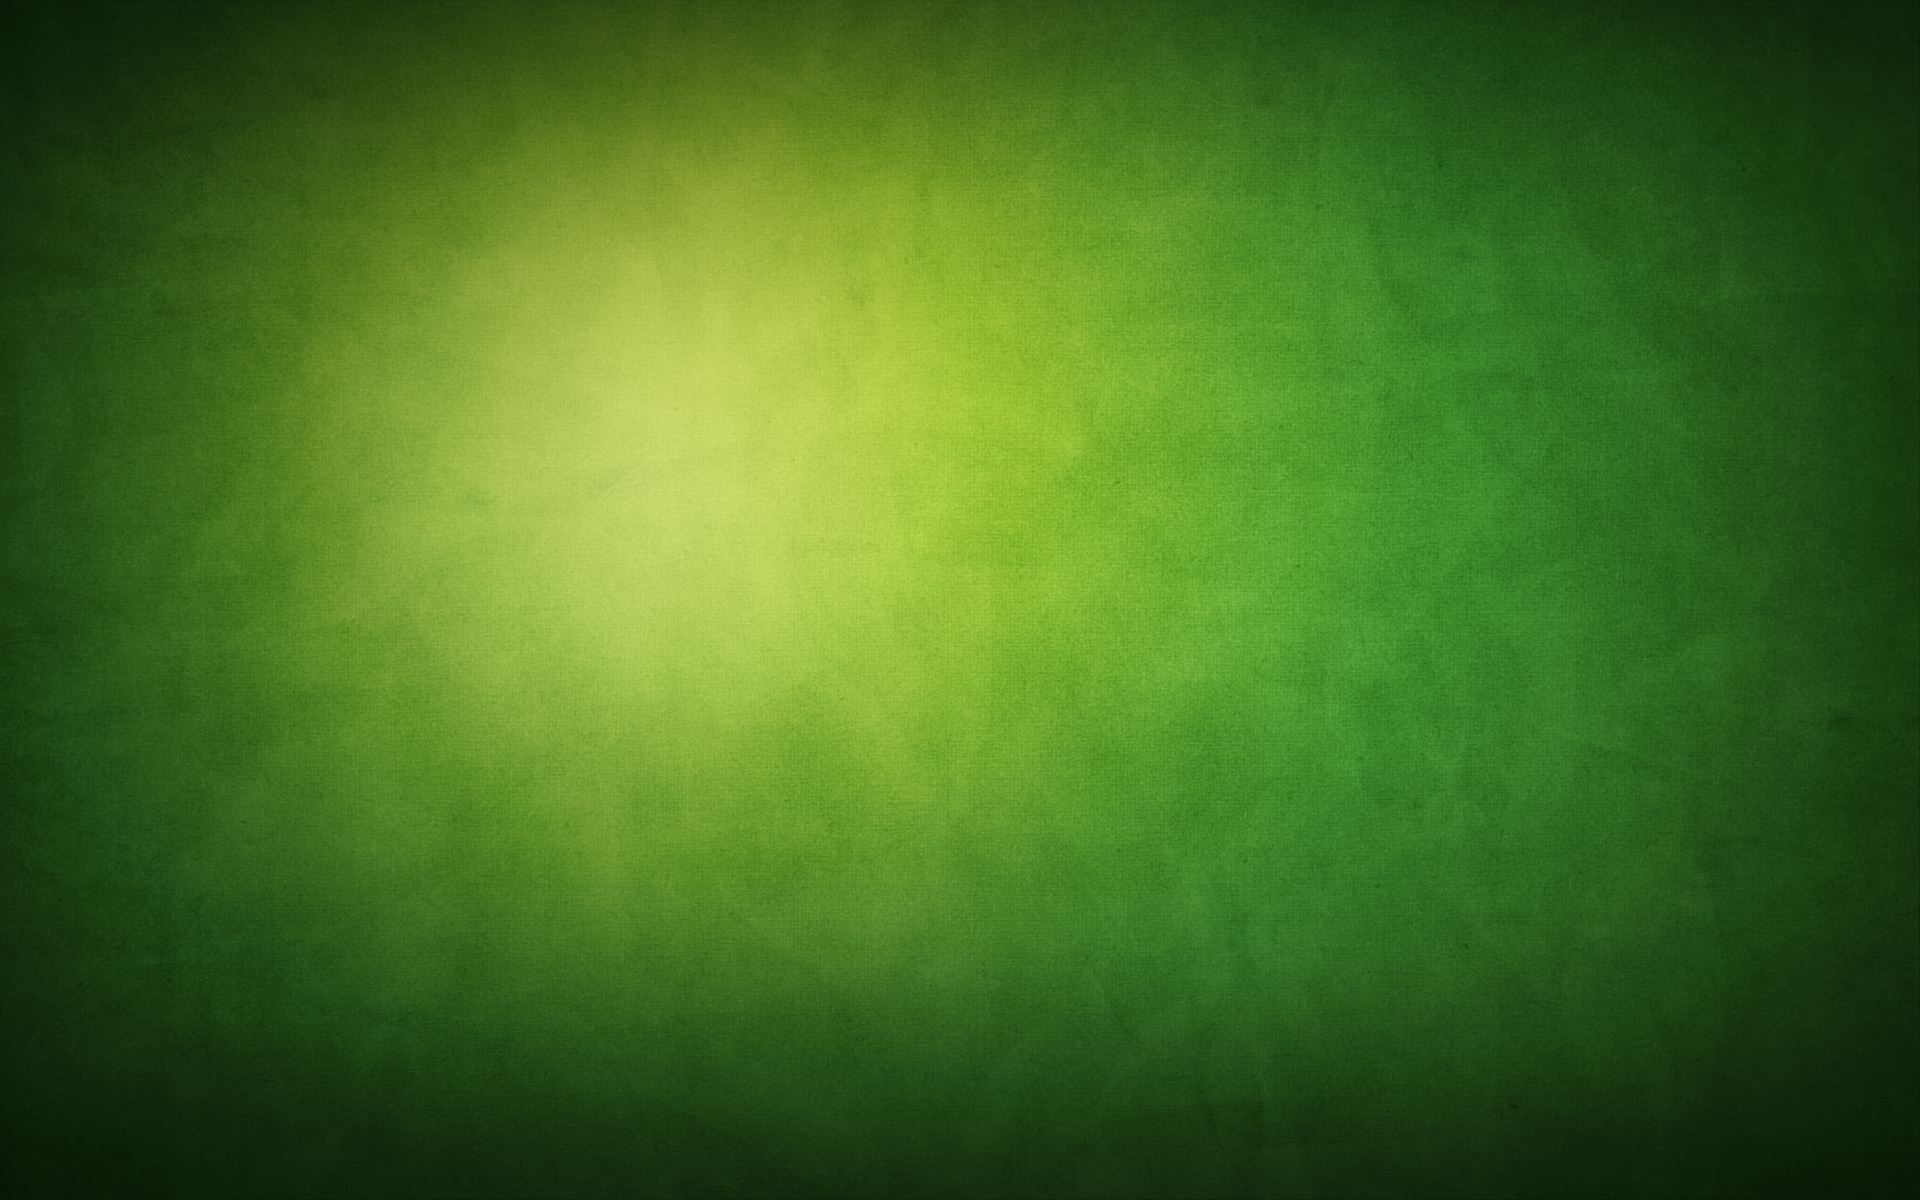 Green Background 1920x1200